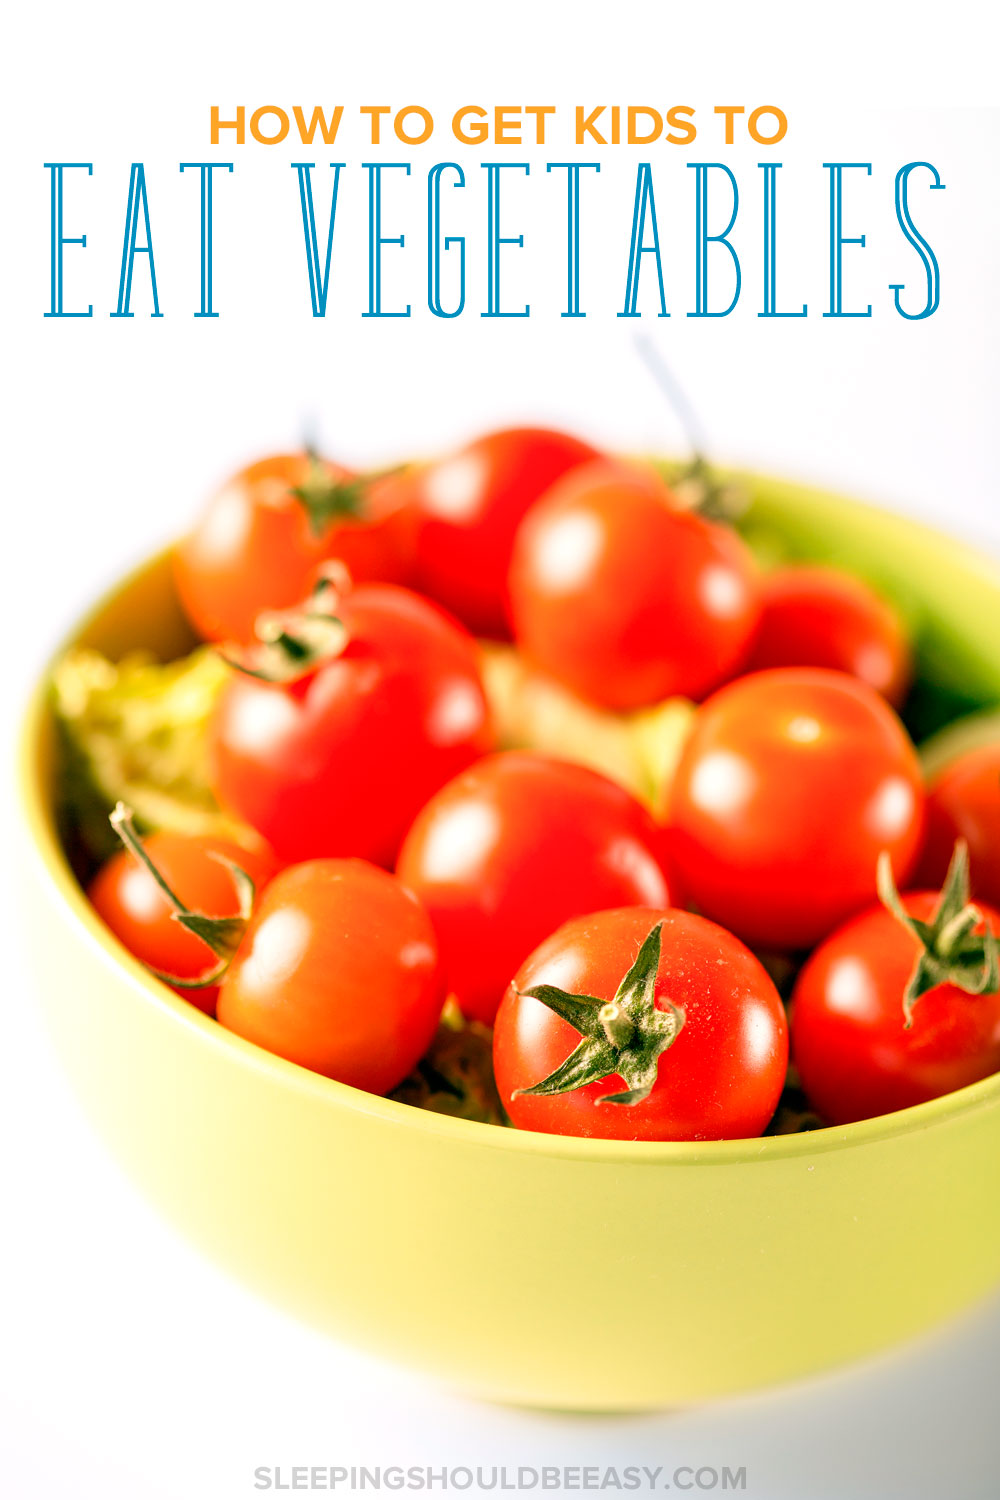 Learn how to get kids to eat vegetables with these practical tips. A must for any mom who wants to cook veggies for kids.